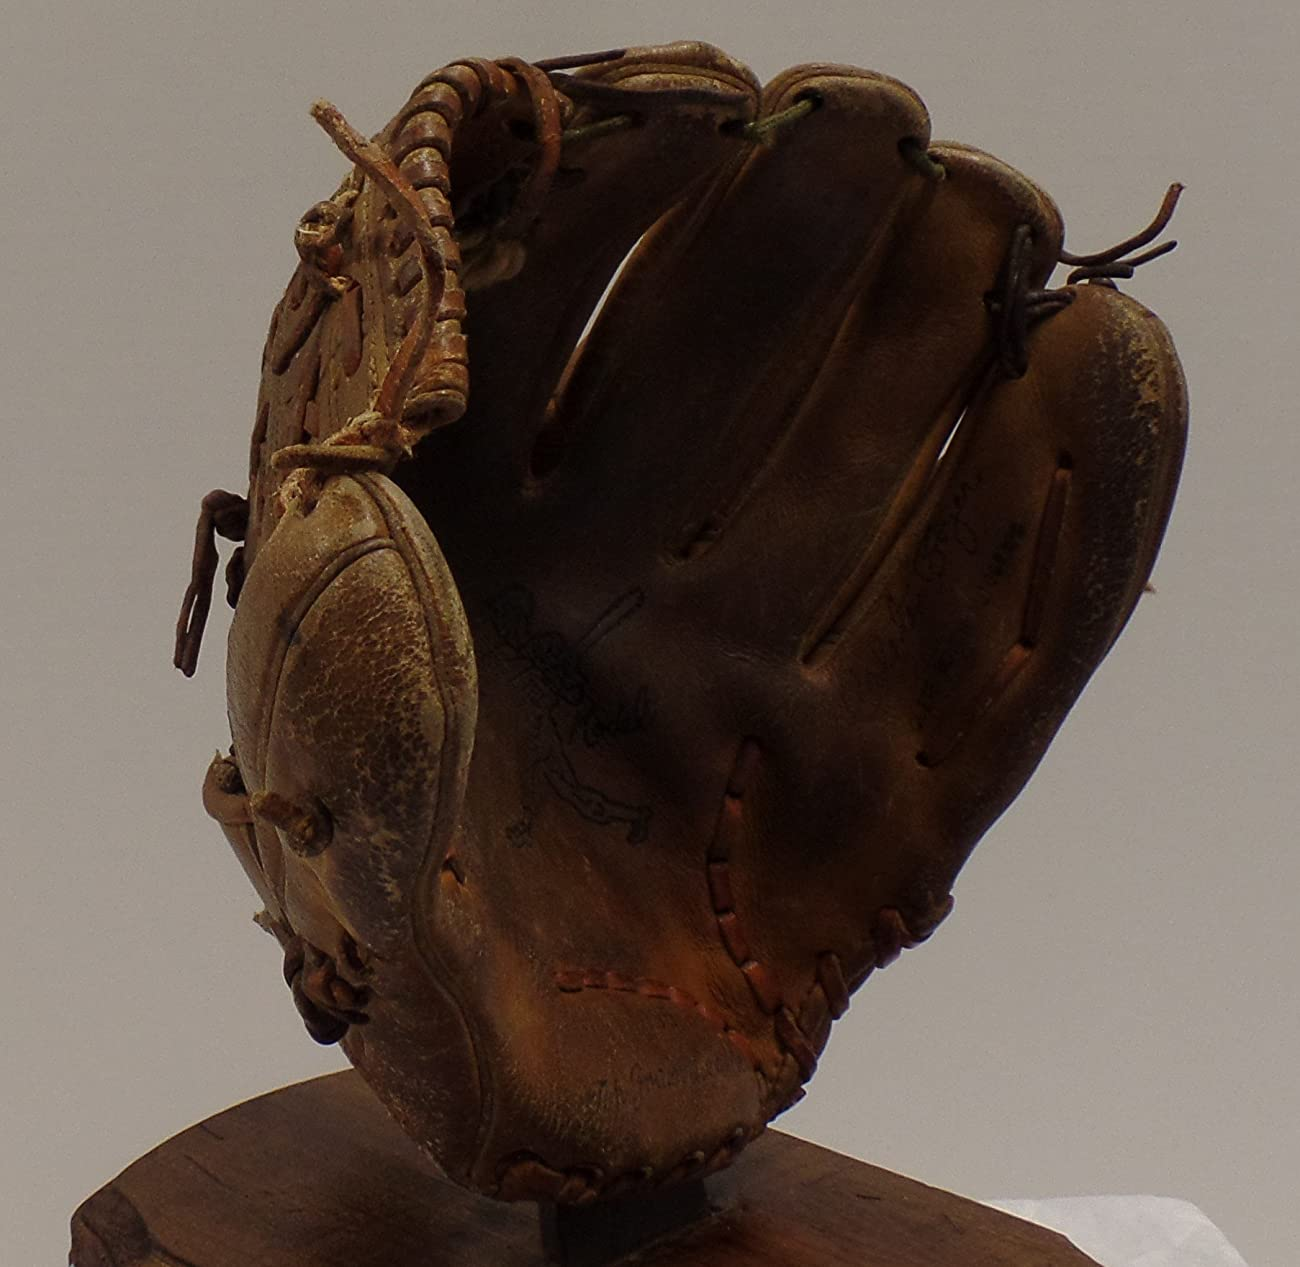 Vintage Clete Boyer Autograph Model 1035 Baseball Glove - Great for Mancave or Baseball Themed Decor (Free Shipping) 1